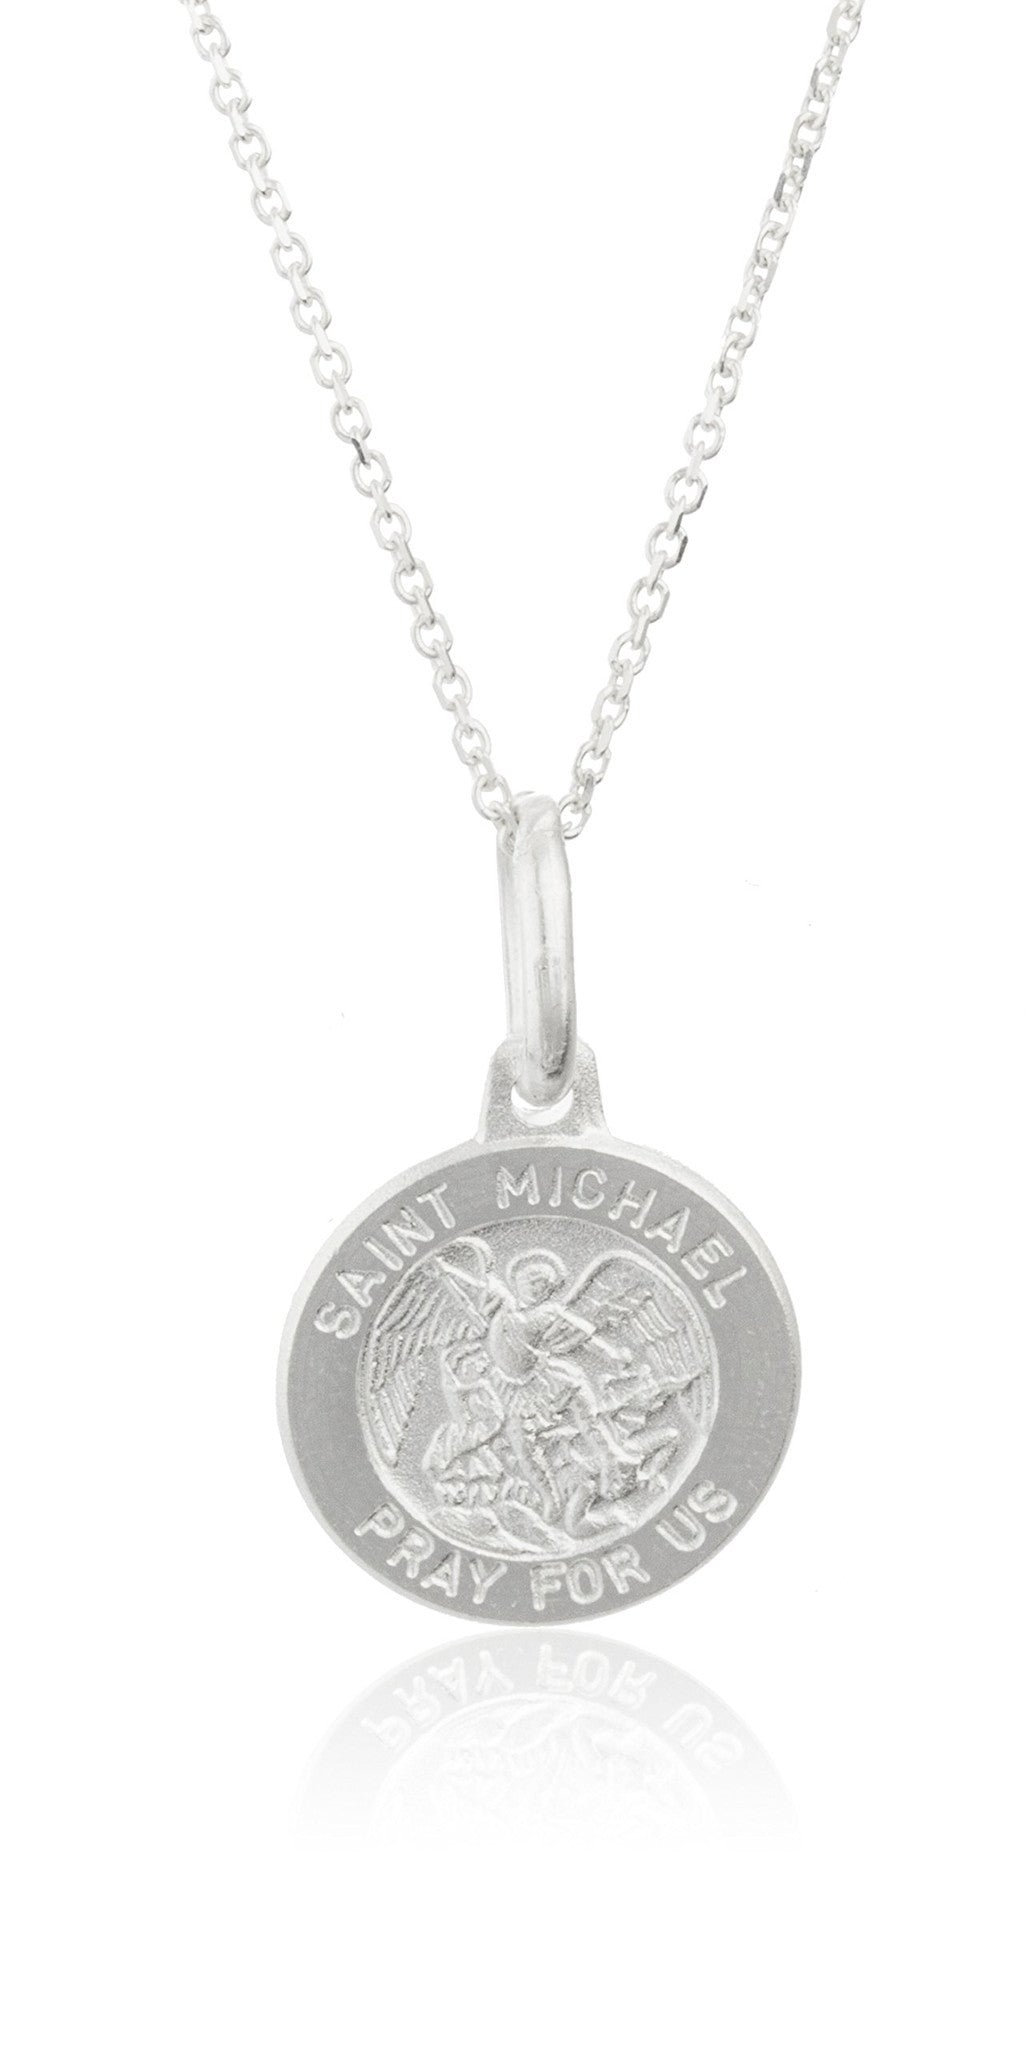 shield silver catholic company pendant medal the michael st saint sterling michaels